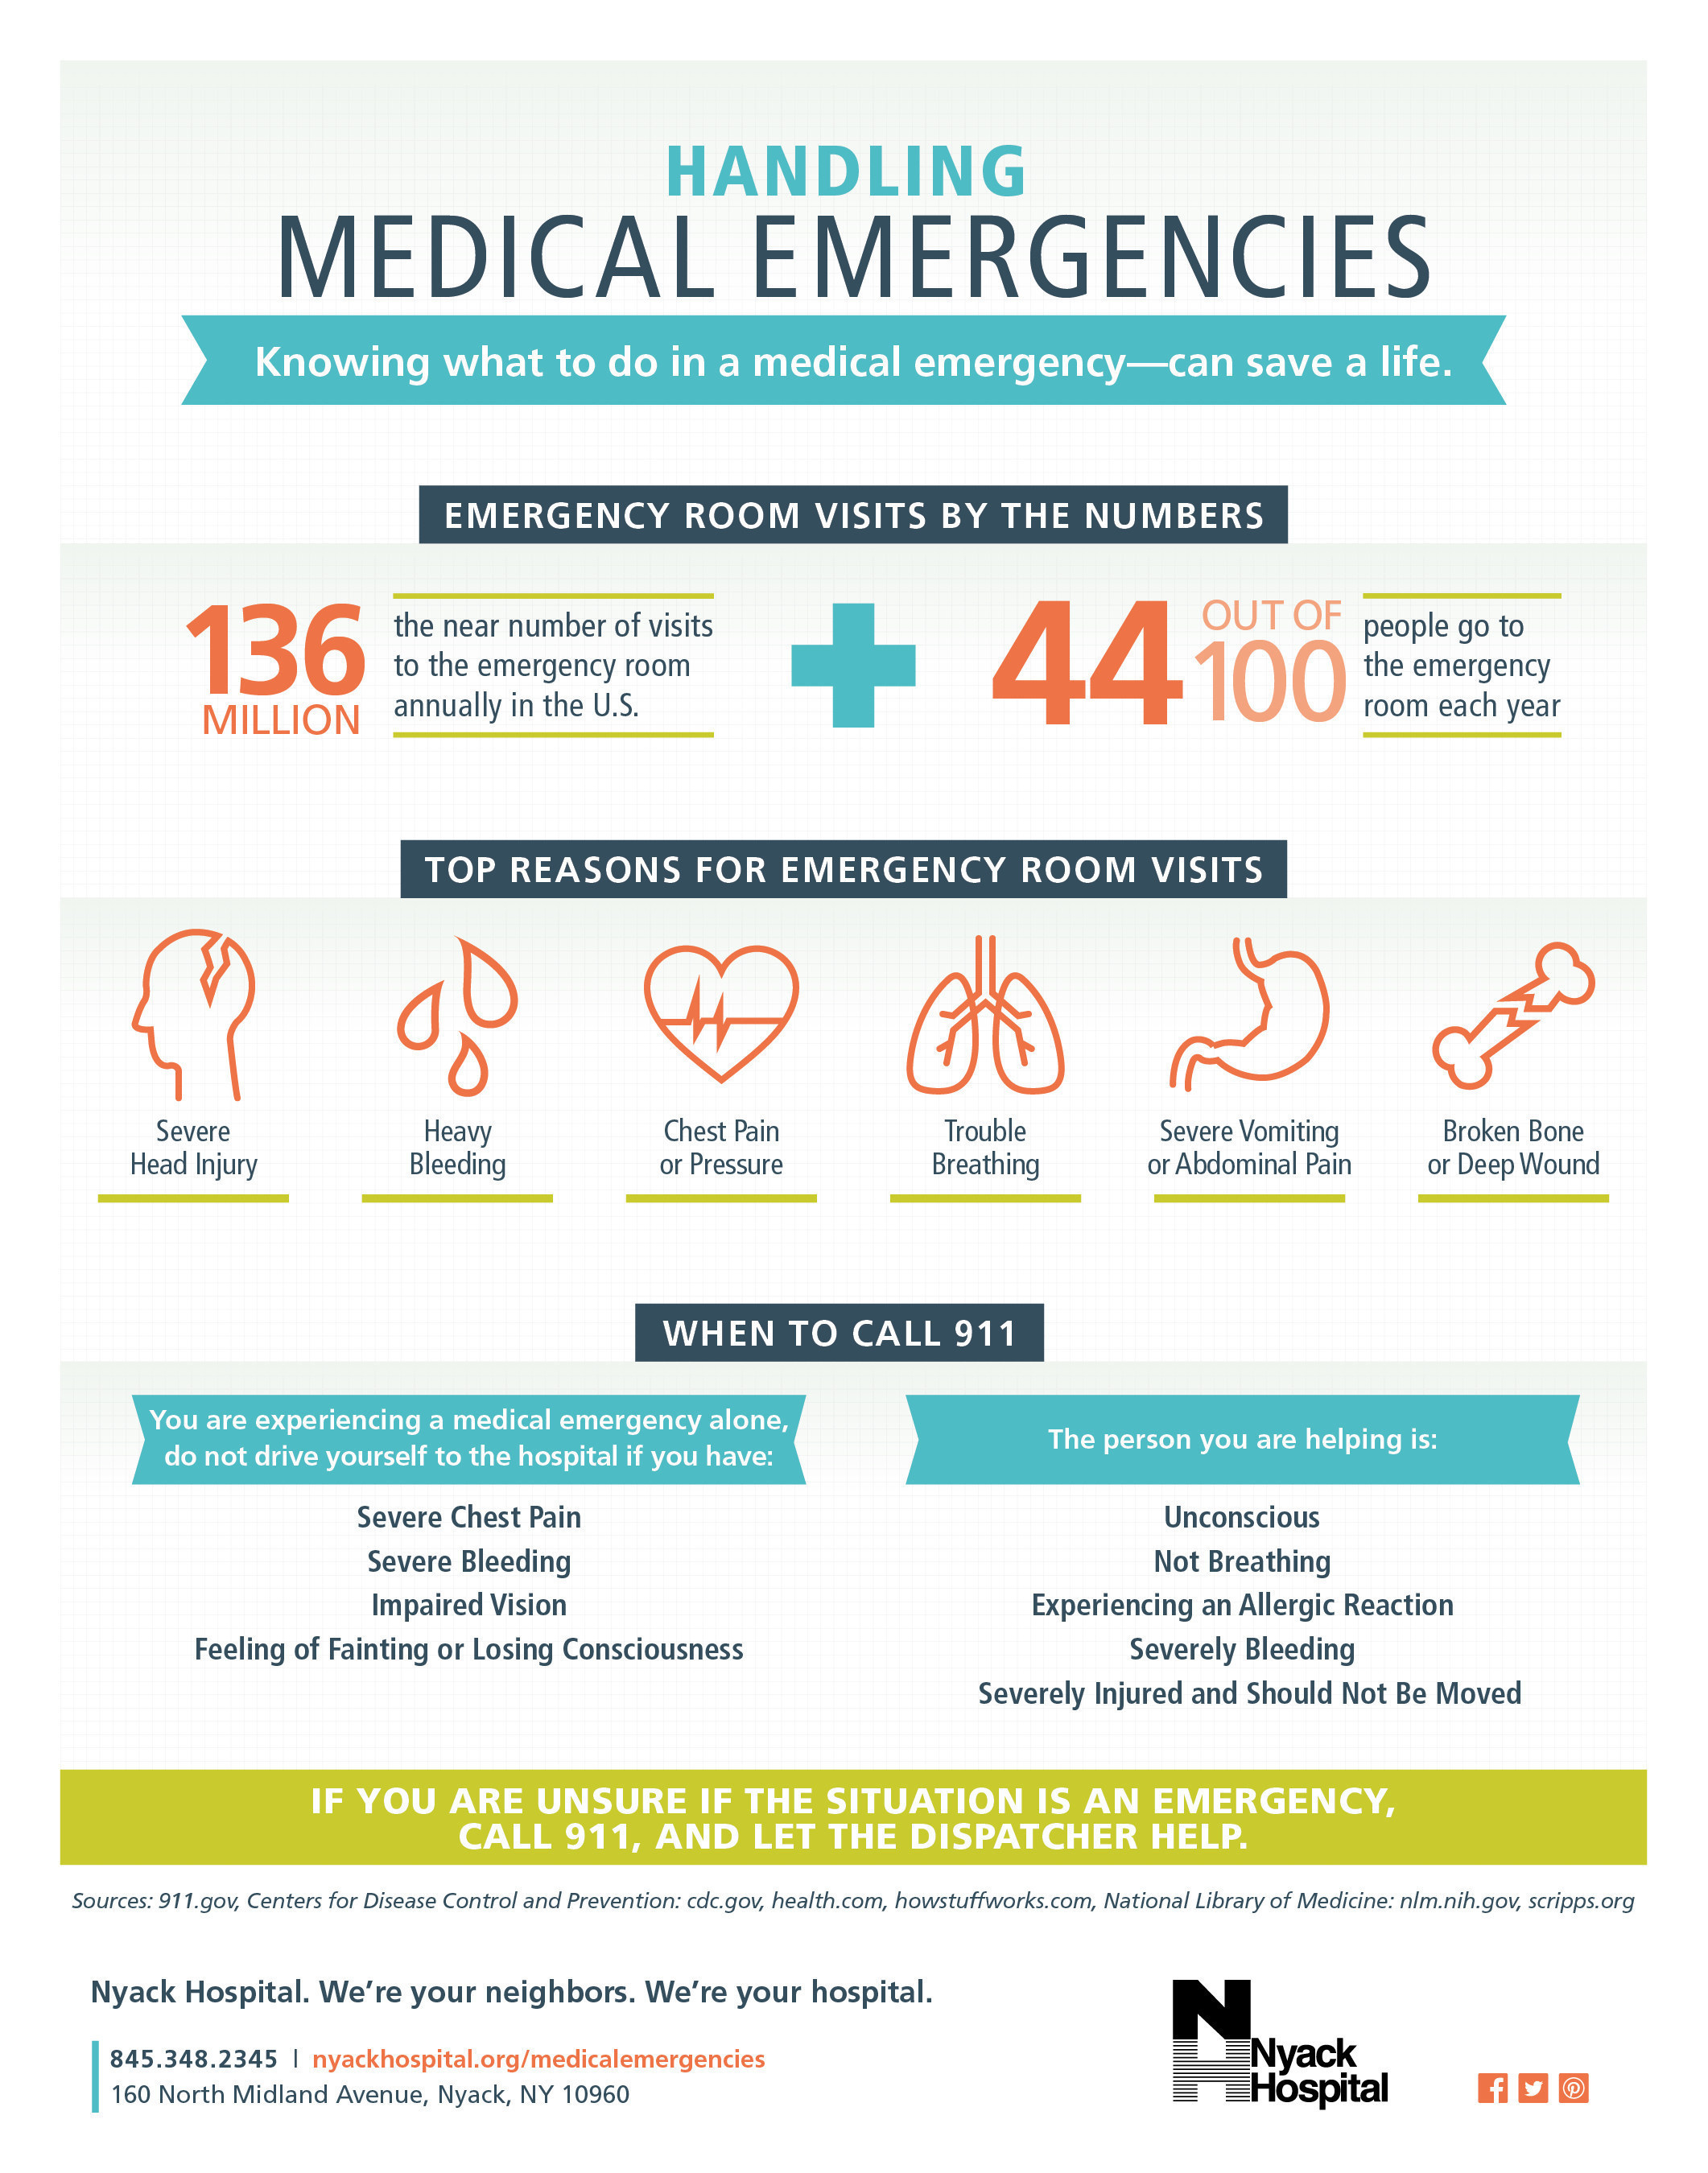 Handling Medical Emergencies - When to Call 911